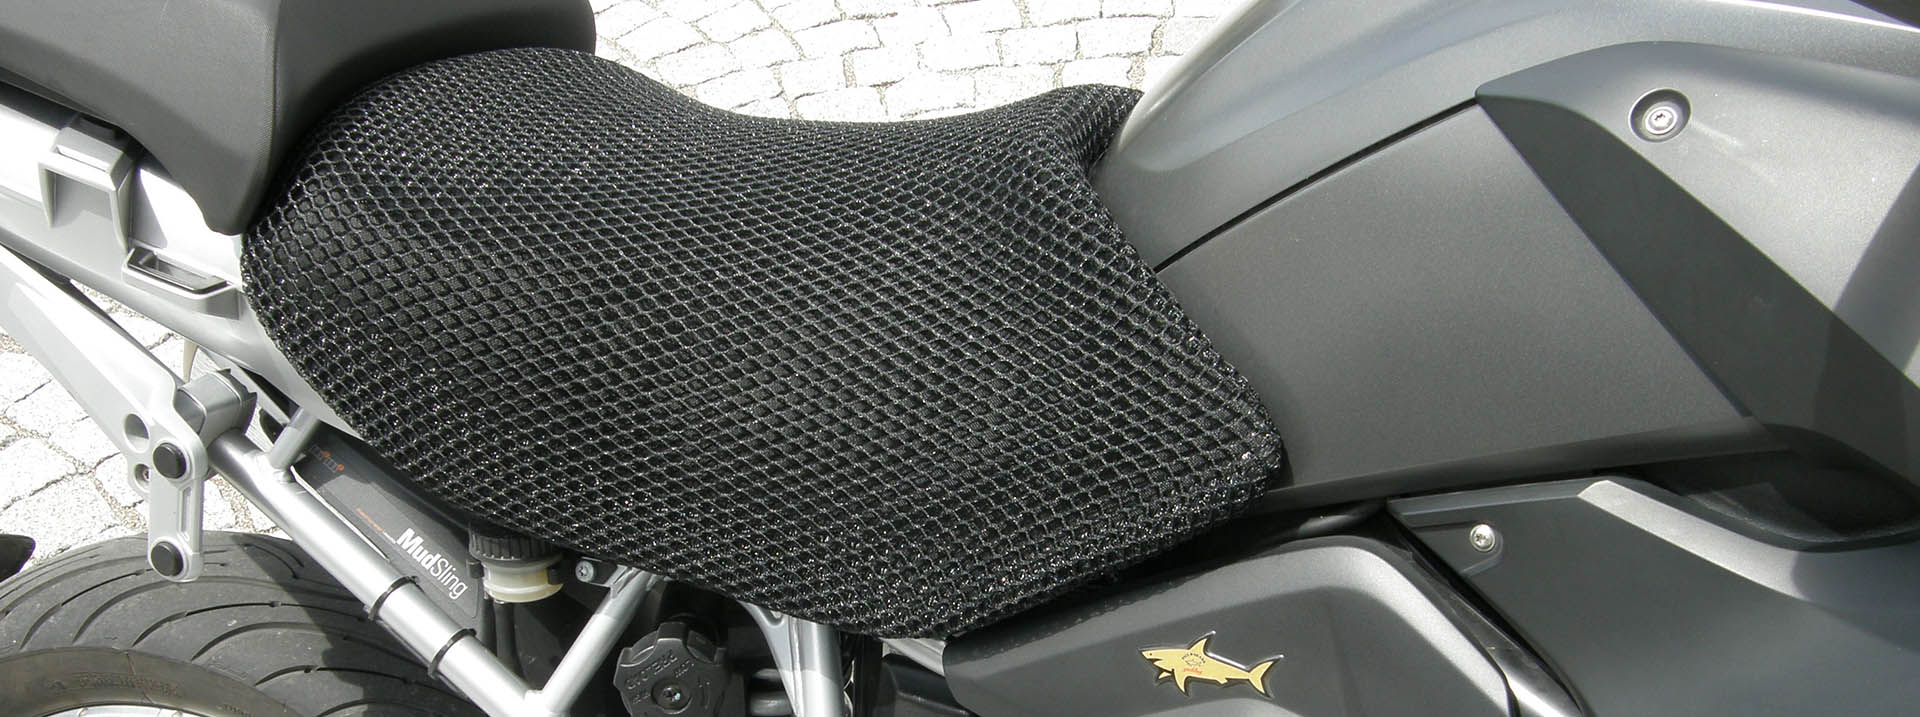 Cool Covers motorbike seat cover